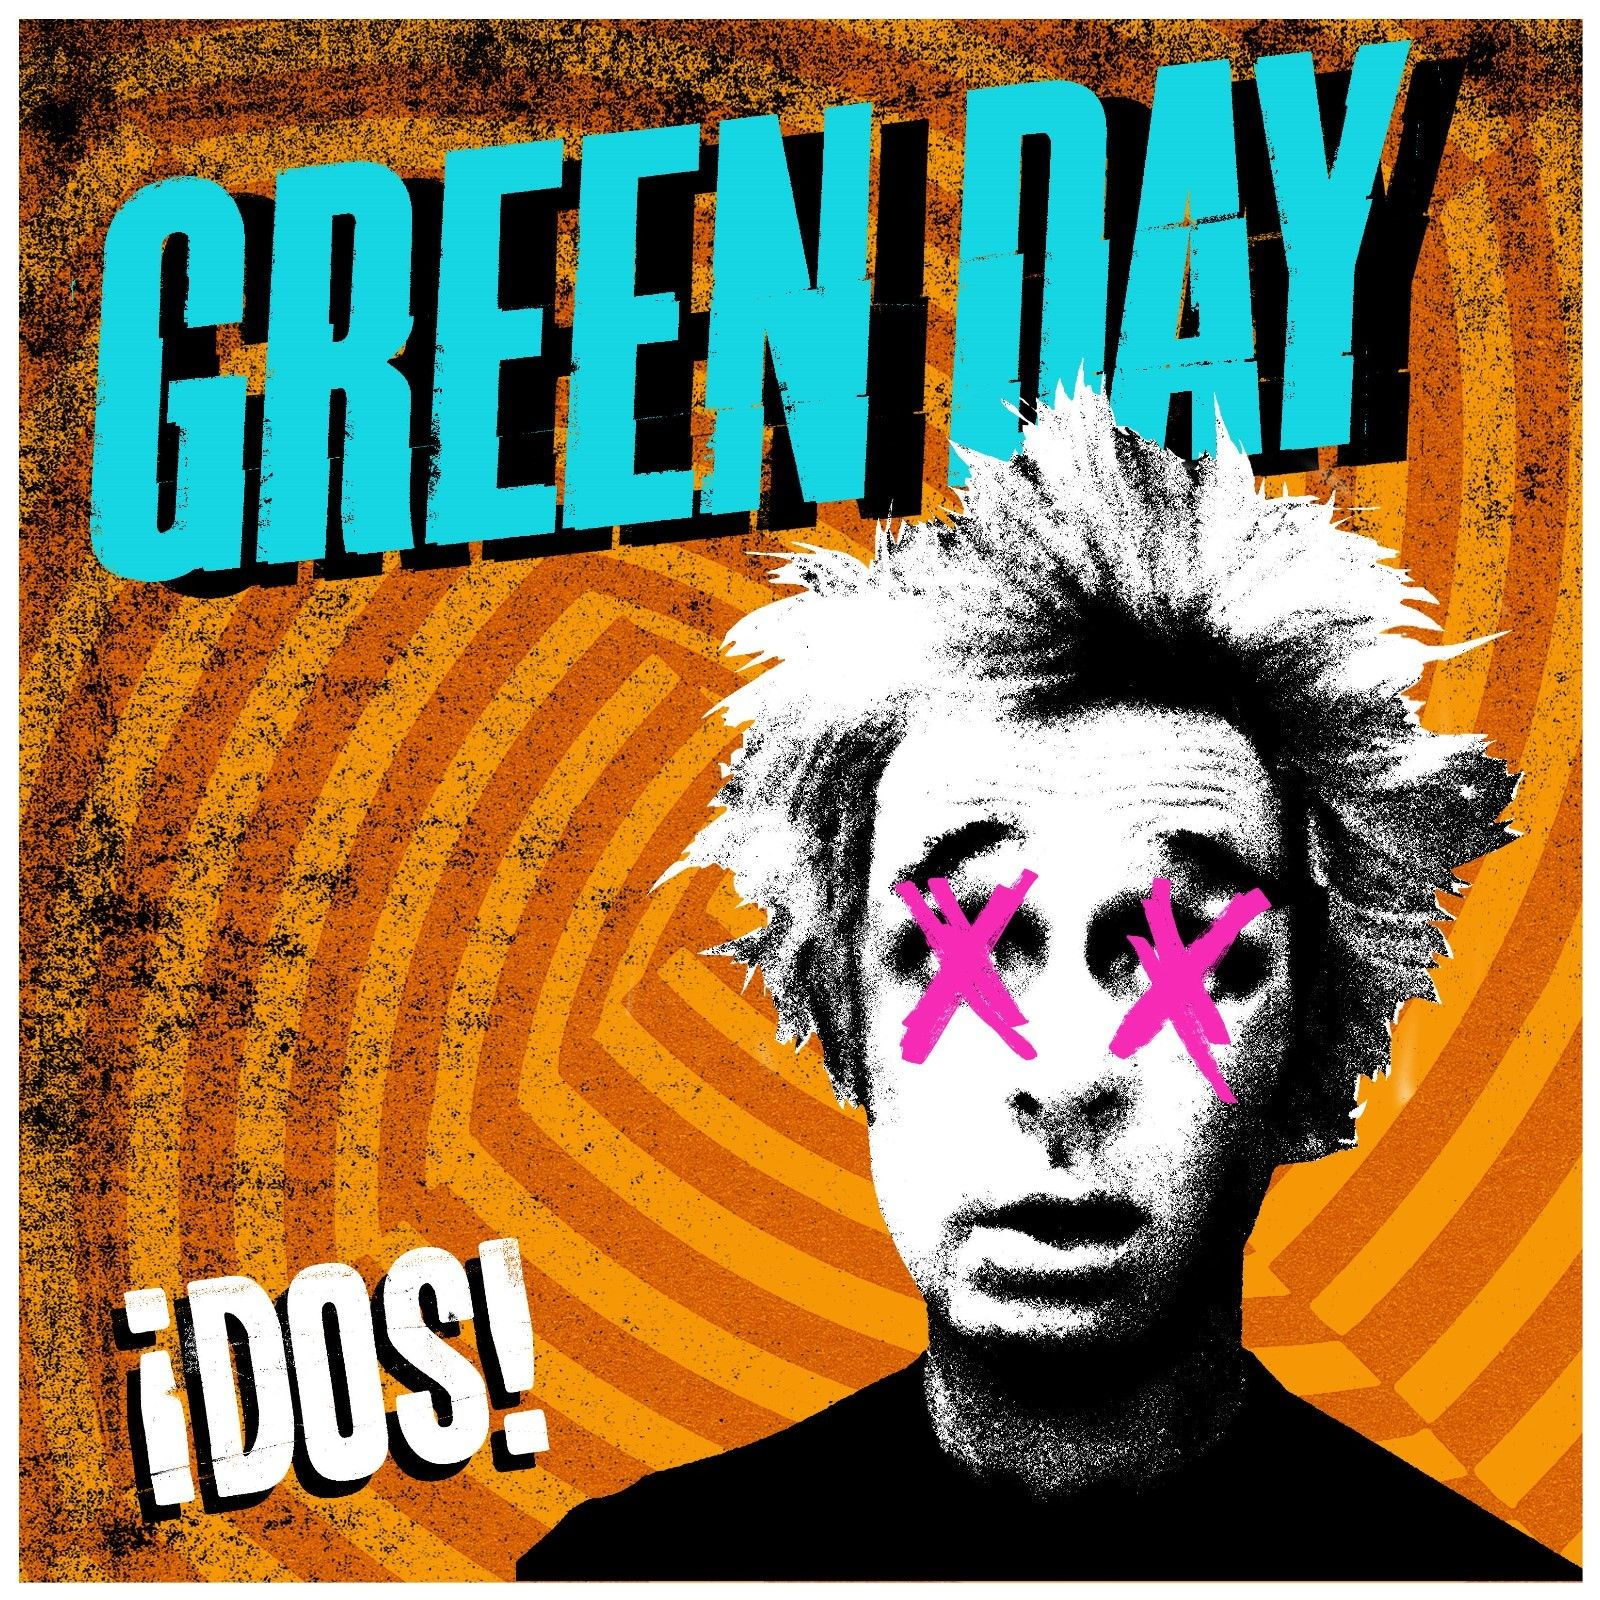 Green Day Christmas.Green Day Idos Album Cover Wall Art Sticker Unusual Christmas Gift Man Cave